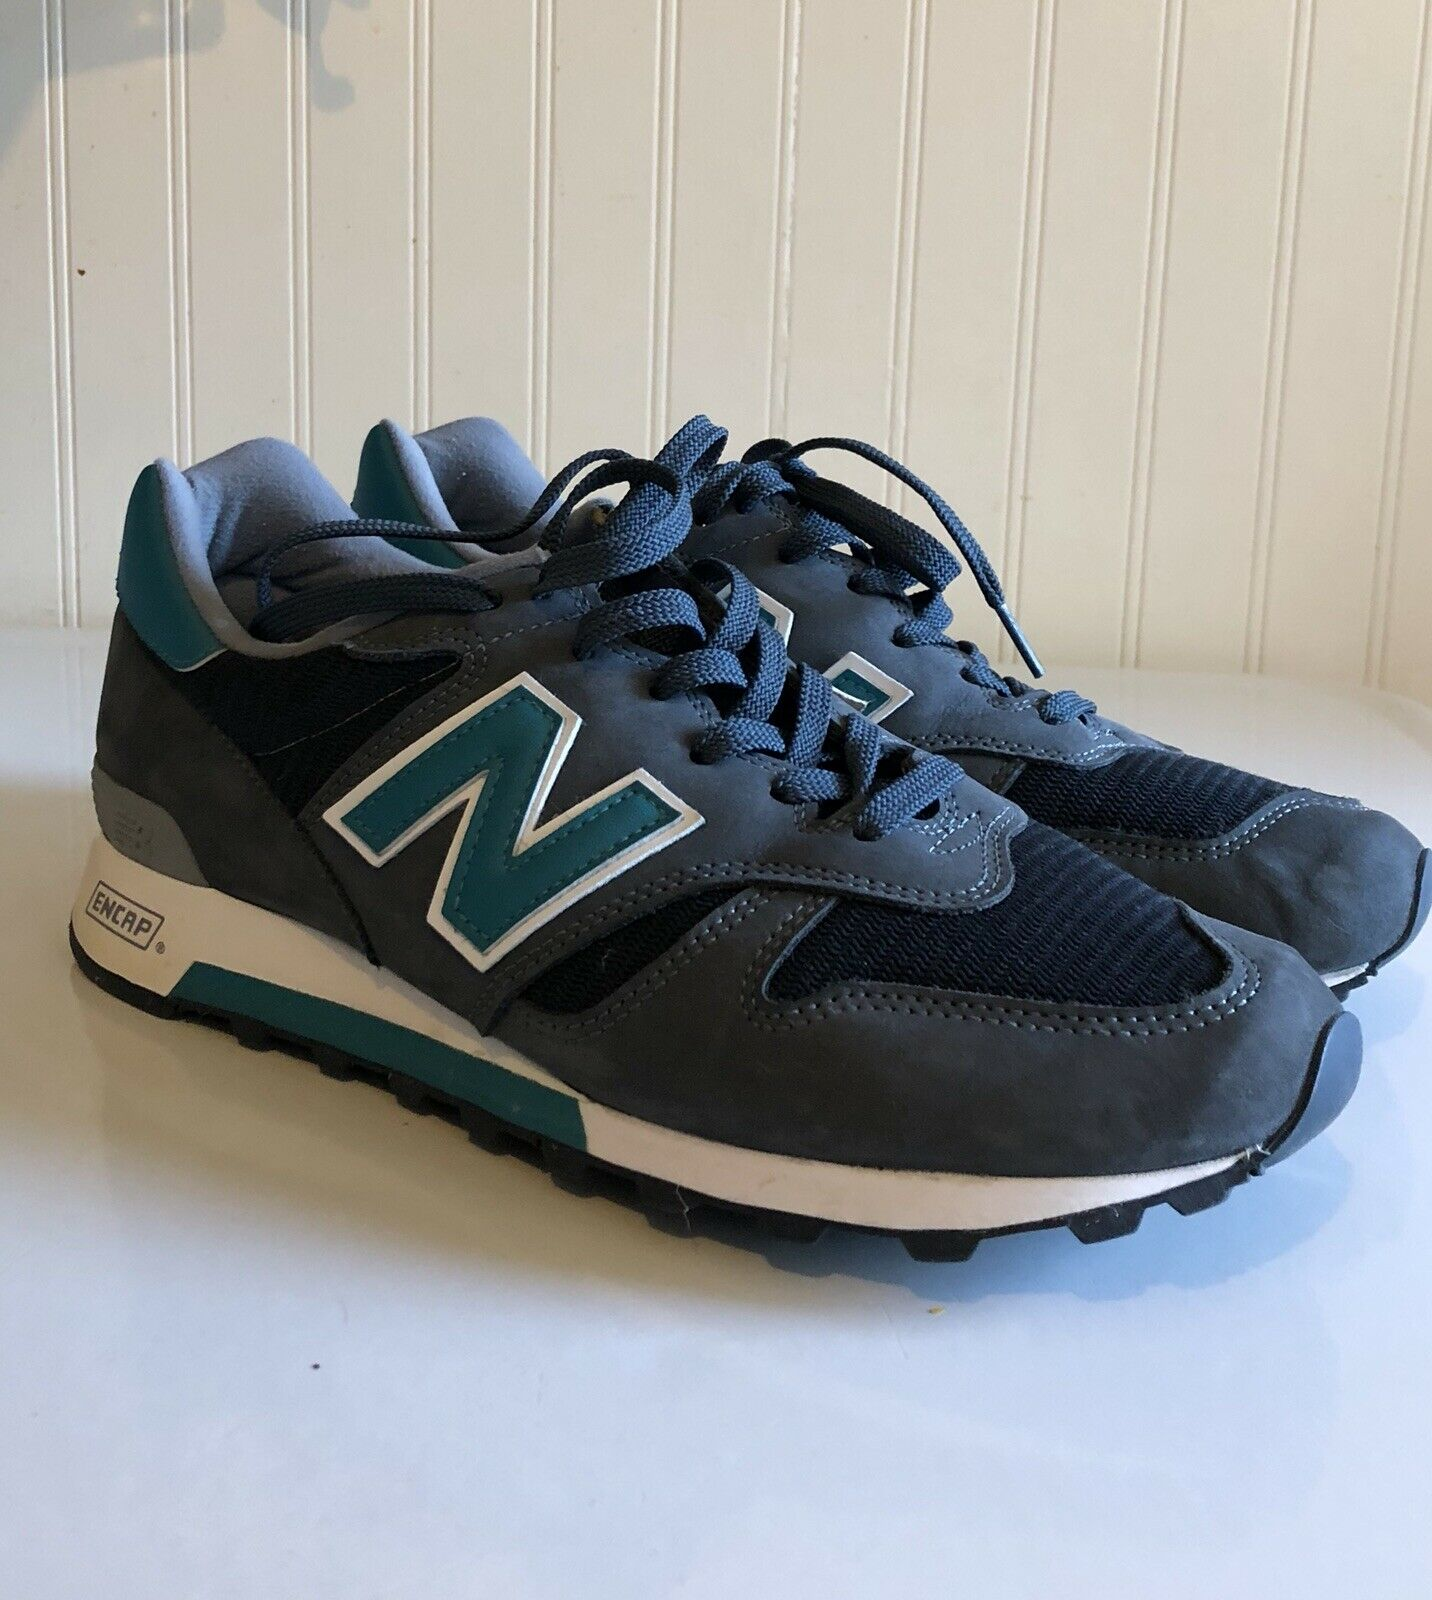 New Balance Md1300MD bluee Grey 90s Style